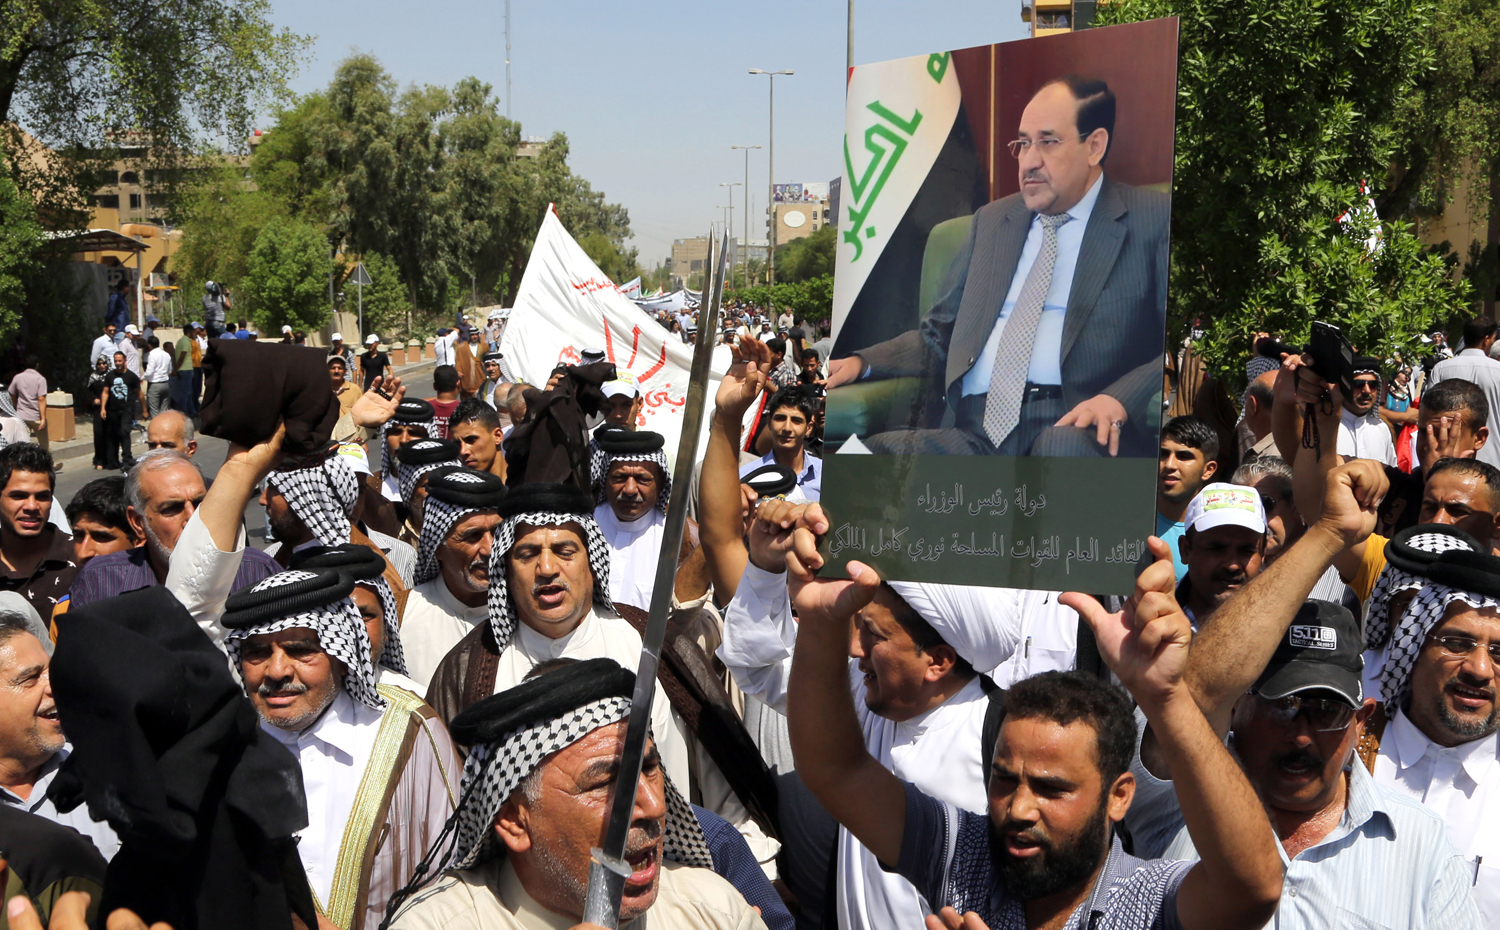 Iraqis chant pro-government slogans and wave national flags to show support for Prime Minister Nouri al-Maliki, during a demonstration in Baghdad, Iraq on August 9, 2014.